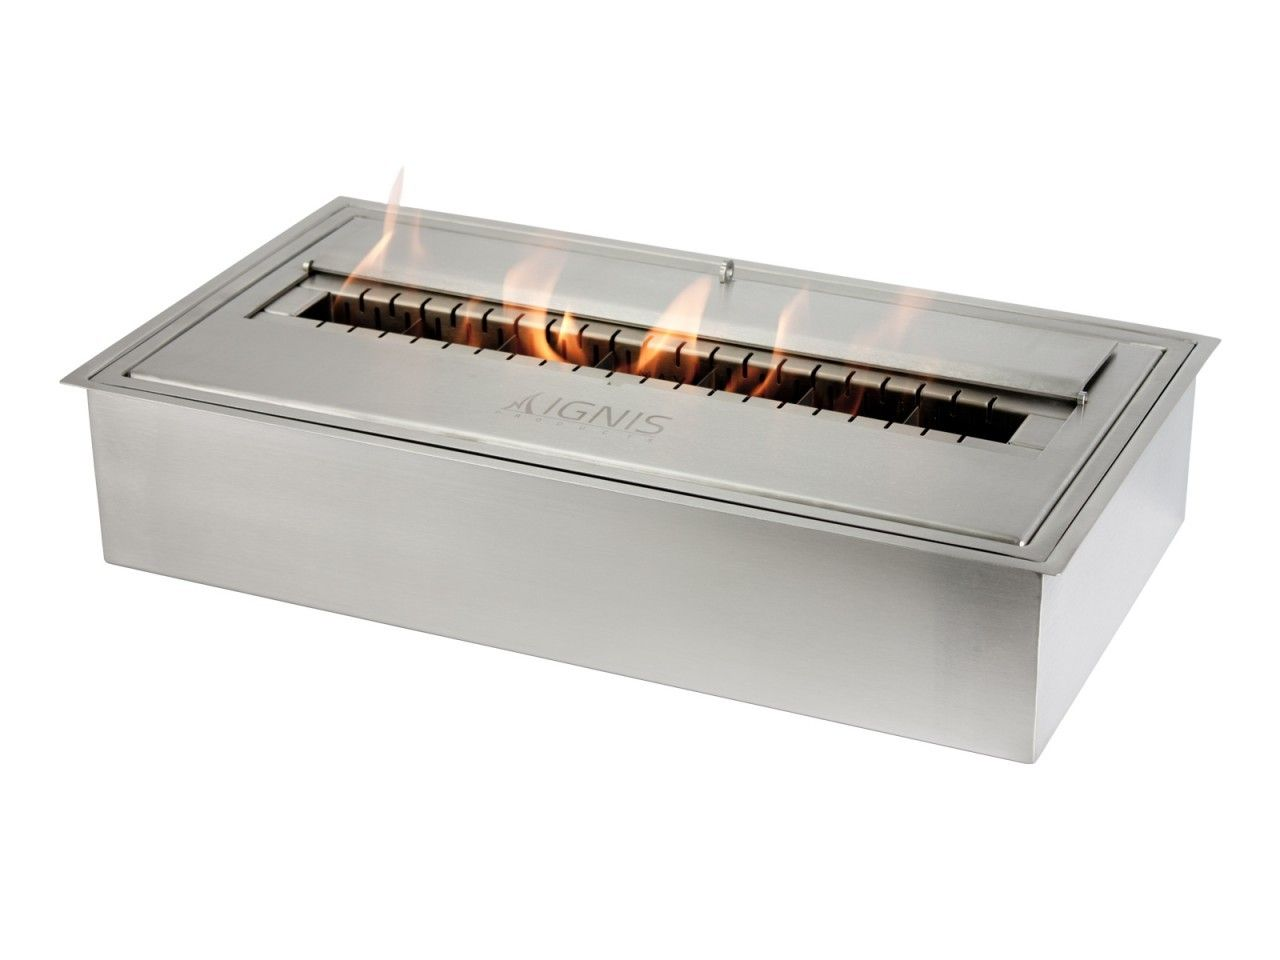 Bioethanol Brenner Ethanol Fireplace Burner Inserts And Grates Allow You The Freedom